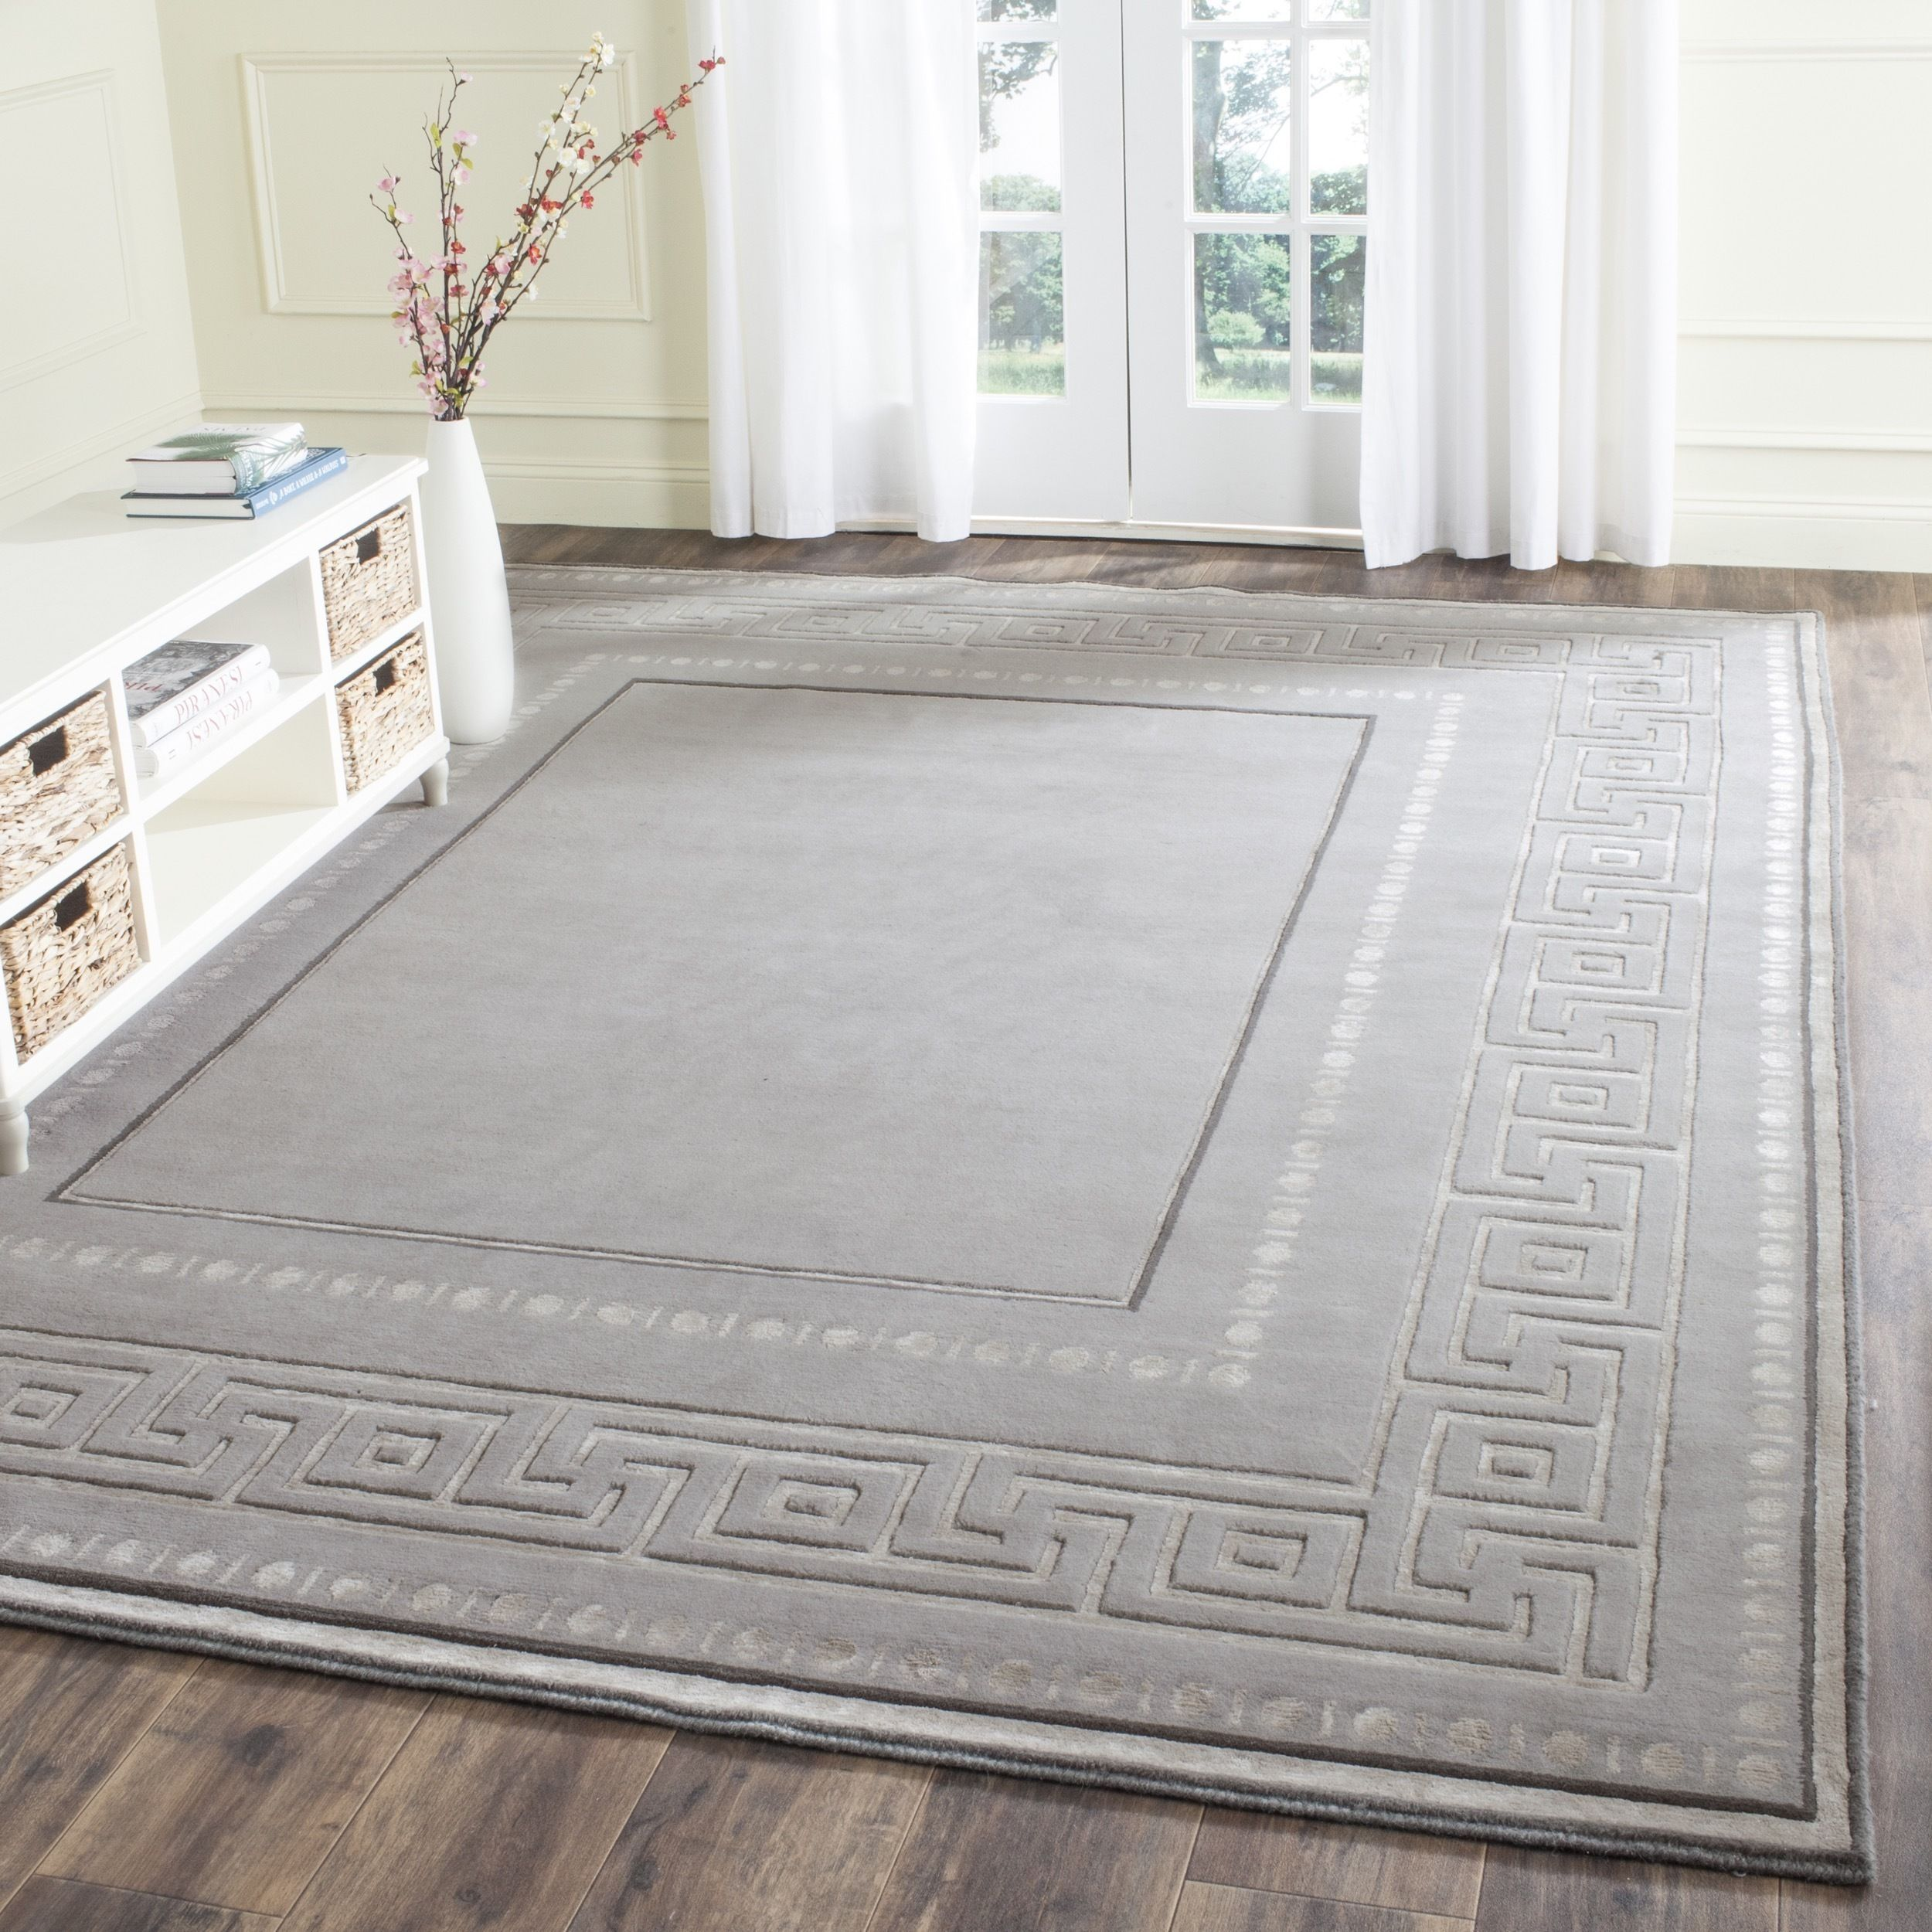 Safavieh Couture Hand Knotted Tibetan Birgit Modern Wool Rug Rugs Area Rugs Colorful Rugs